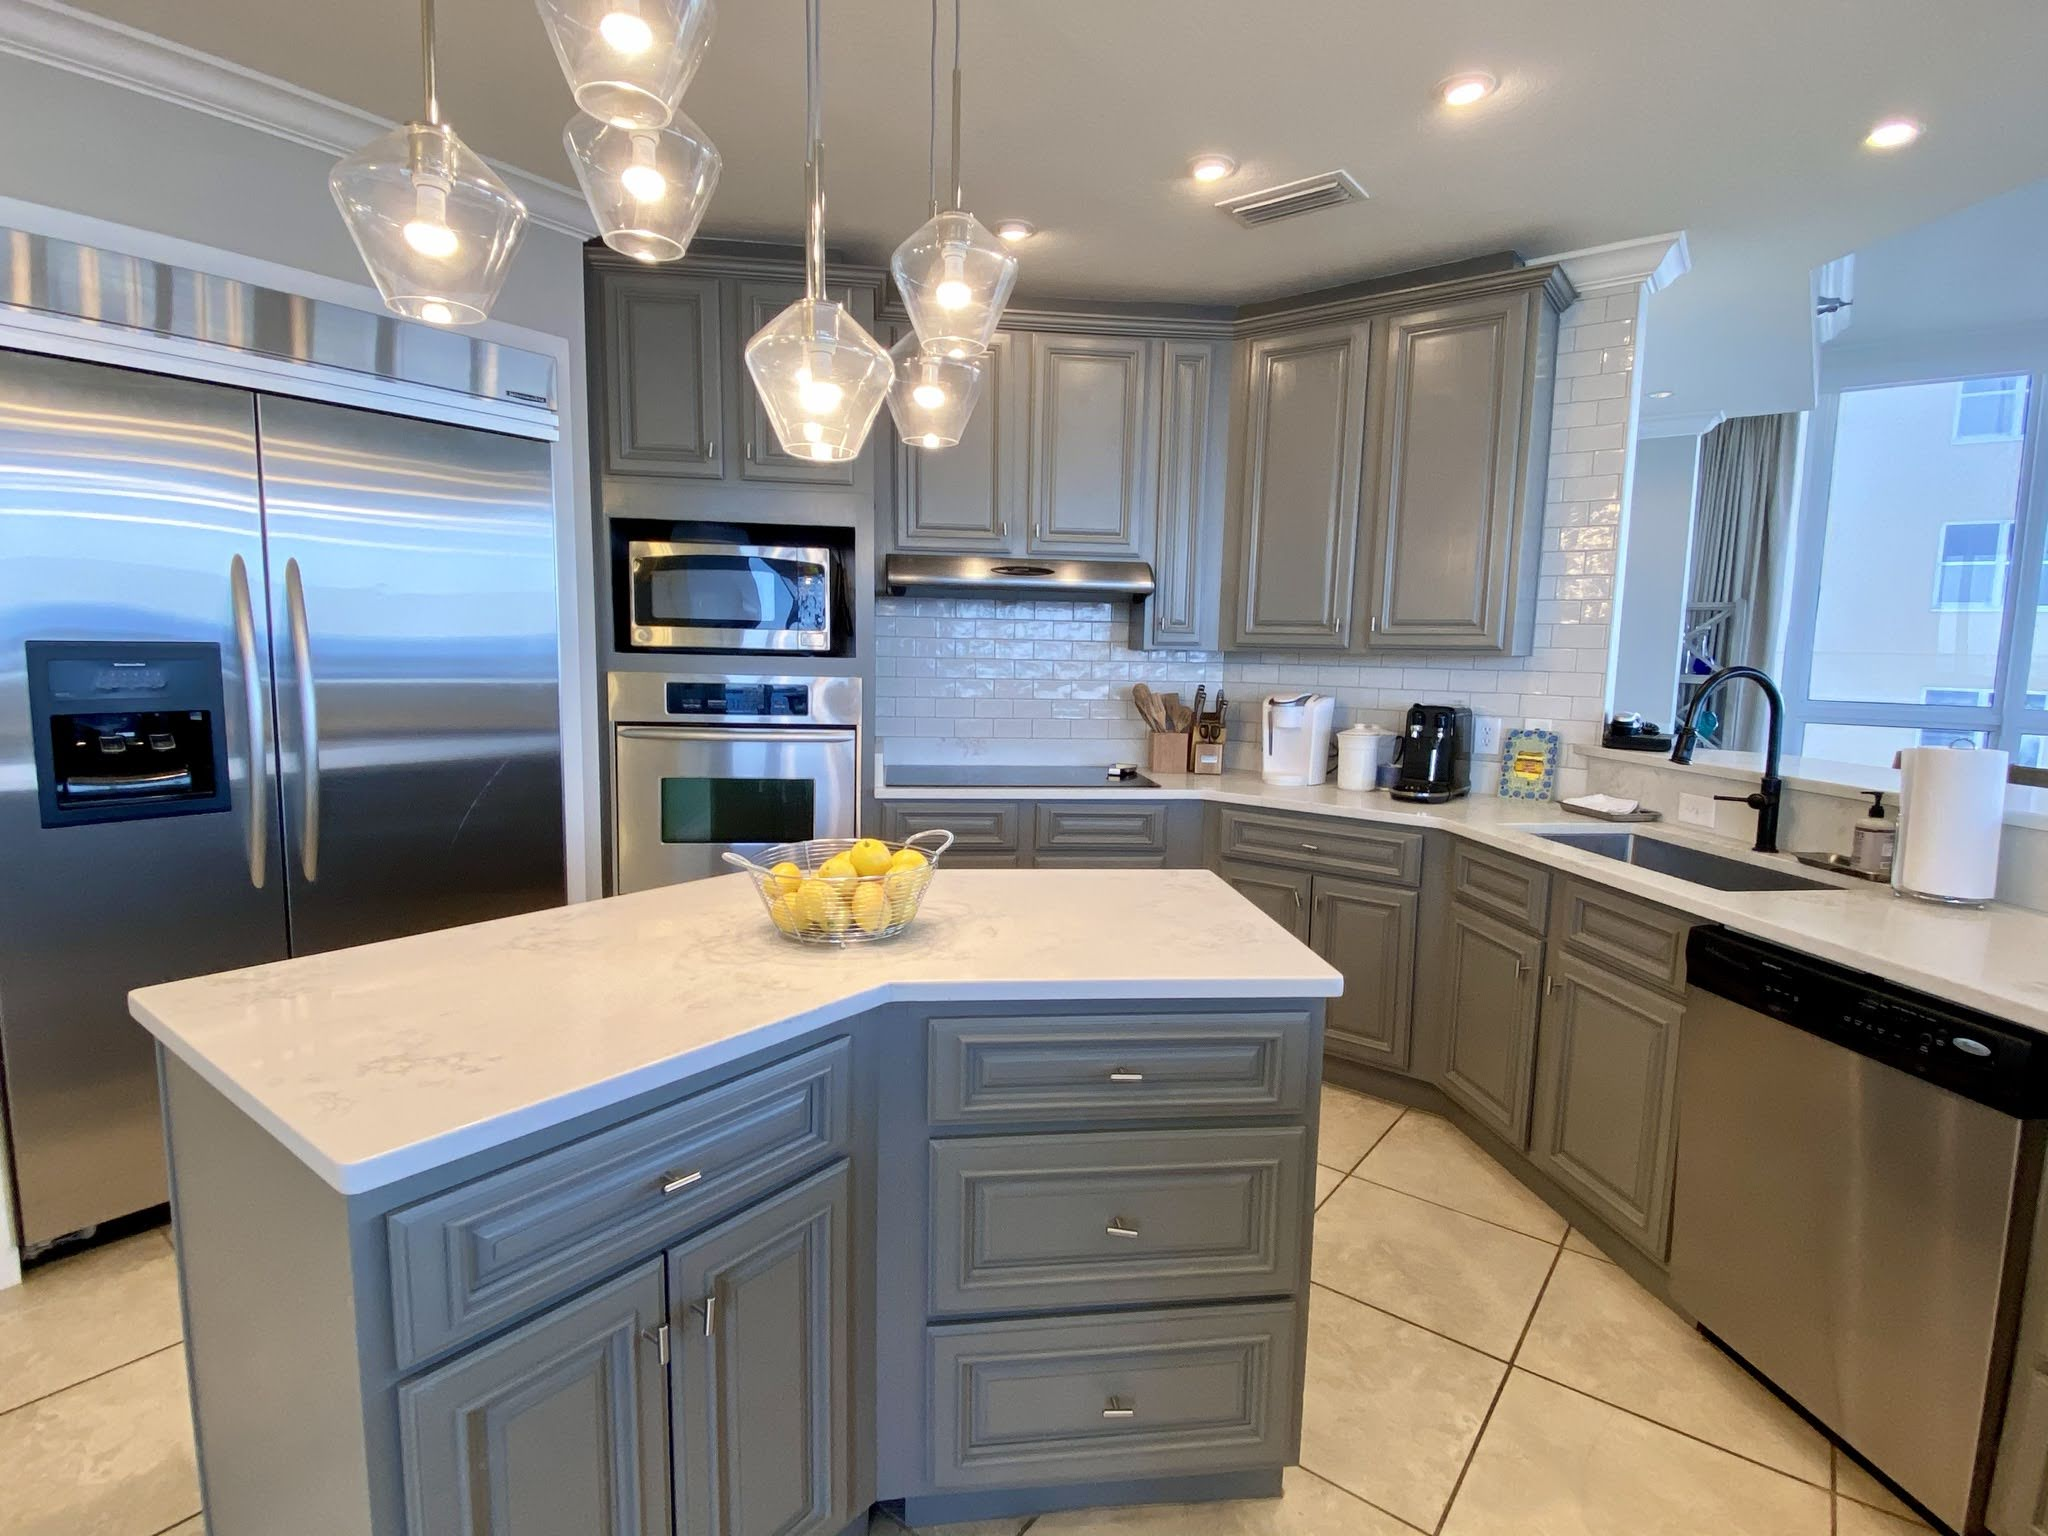 The fully equipped kitchen includes quality, stainless steel